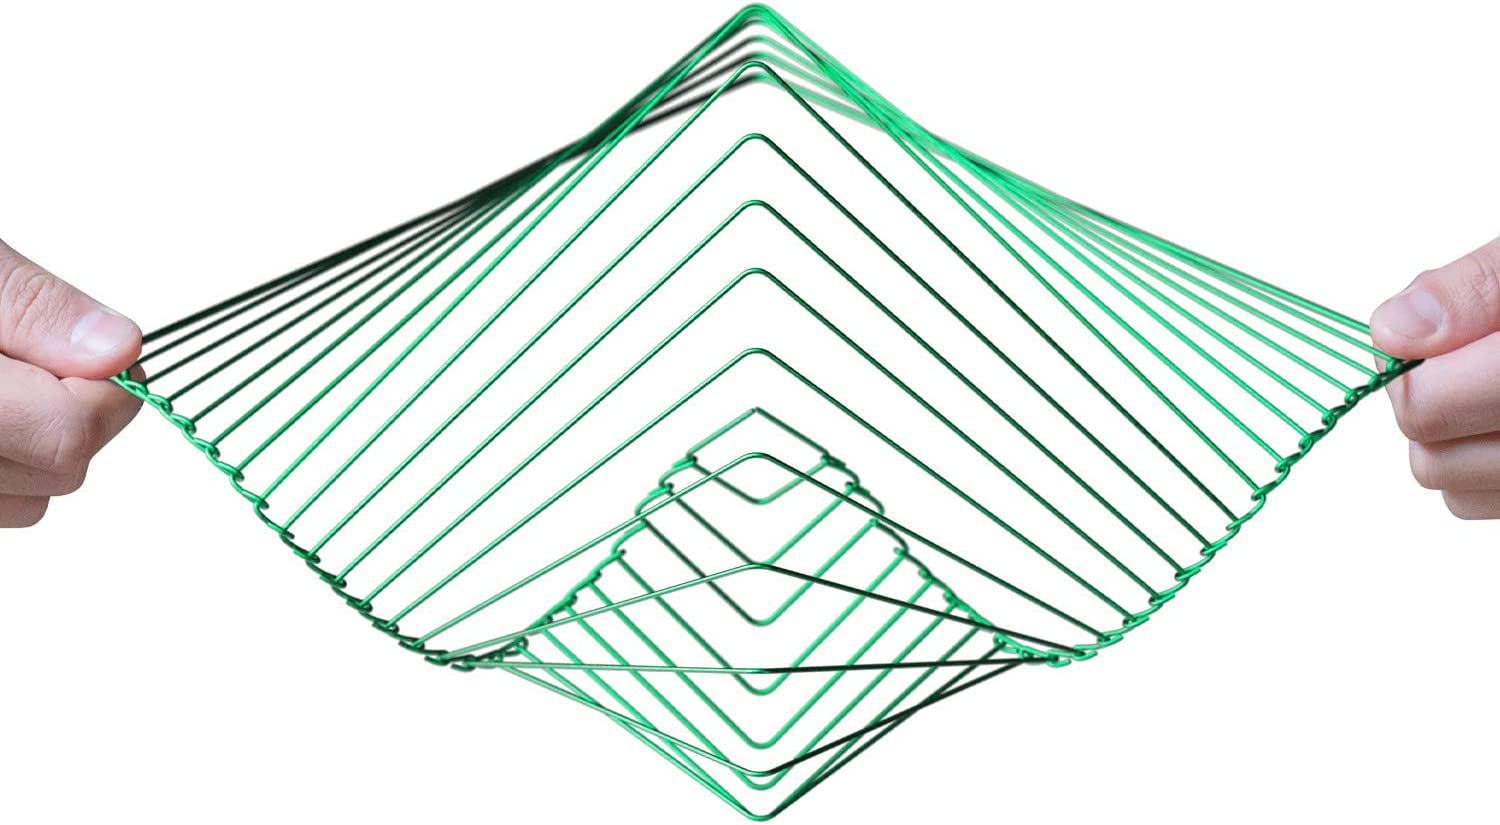 Atellani Square Wave | The Mesmerizing Kinetic Wind Spinner | Magical Calming Art Piece by Ivan Black (Green)